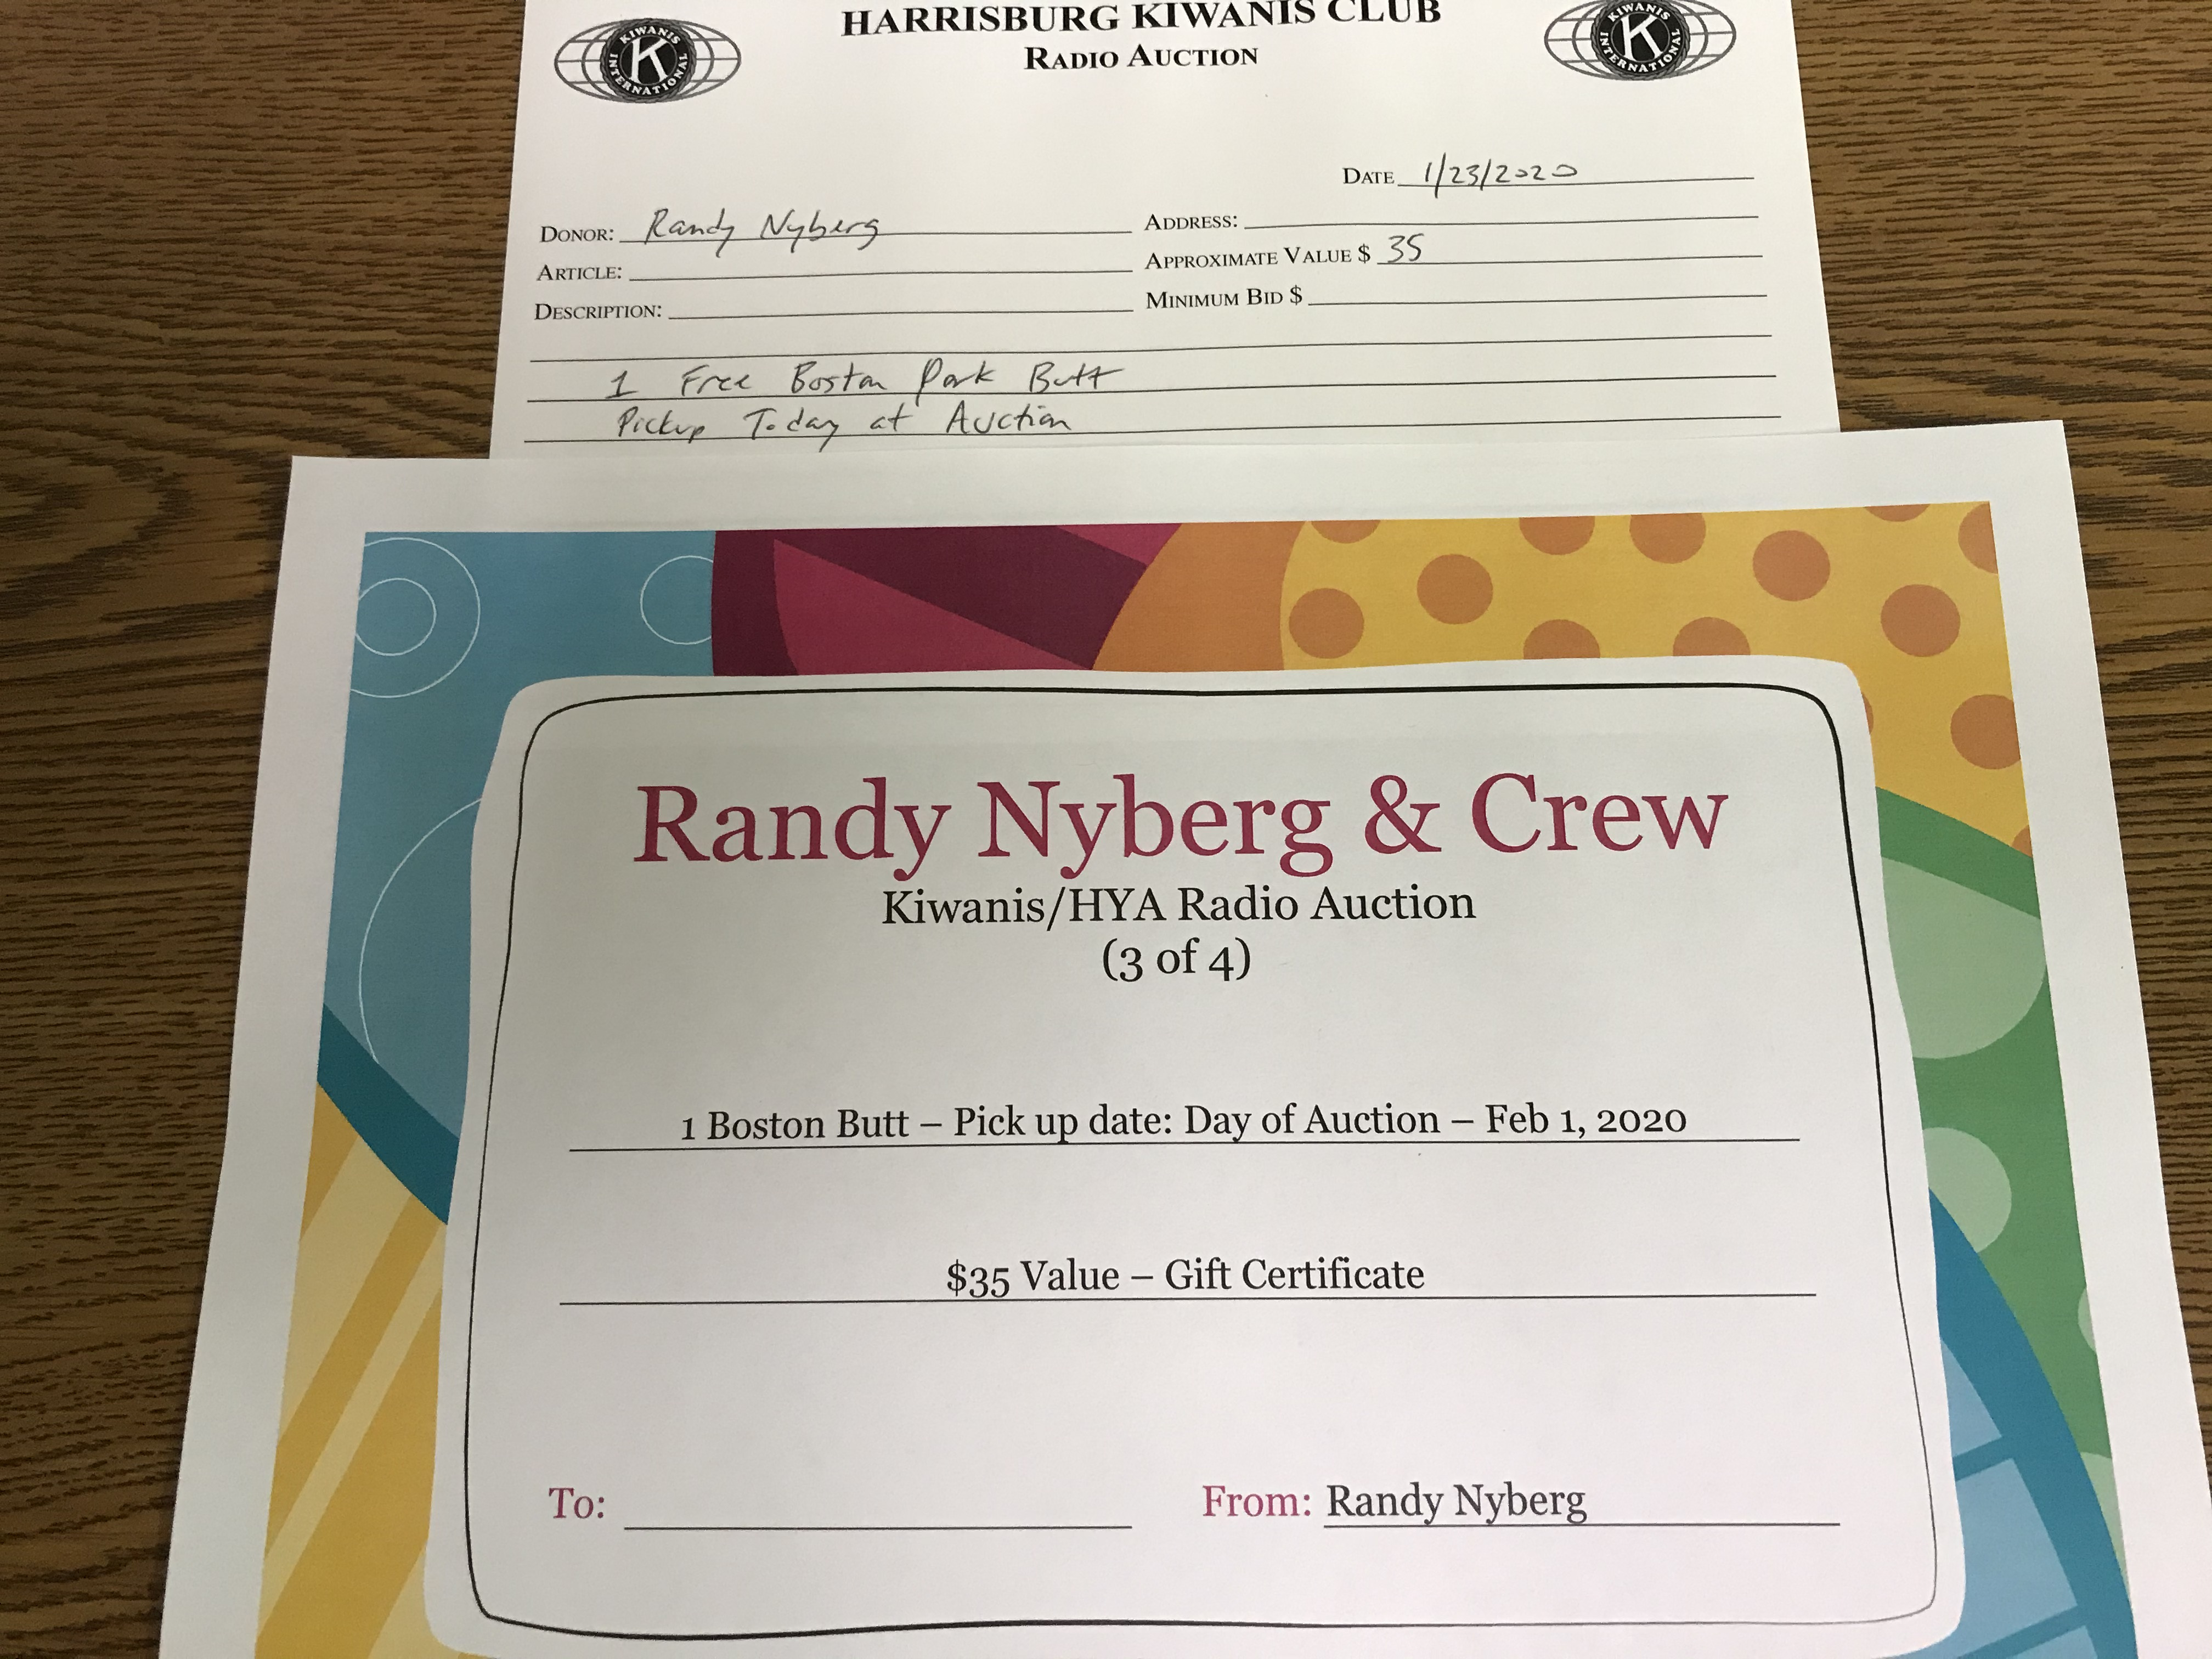 Item 310 - Randy Nyberg 1 Free Pork Butt (available for pickup the day of the Auction)